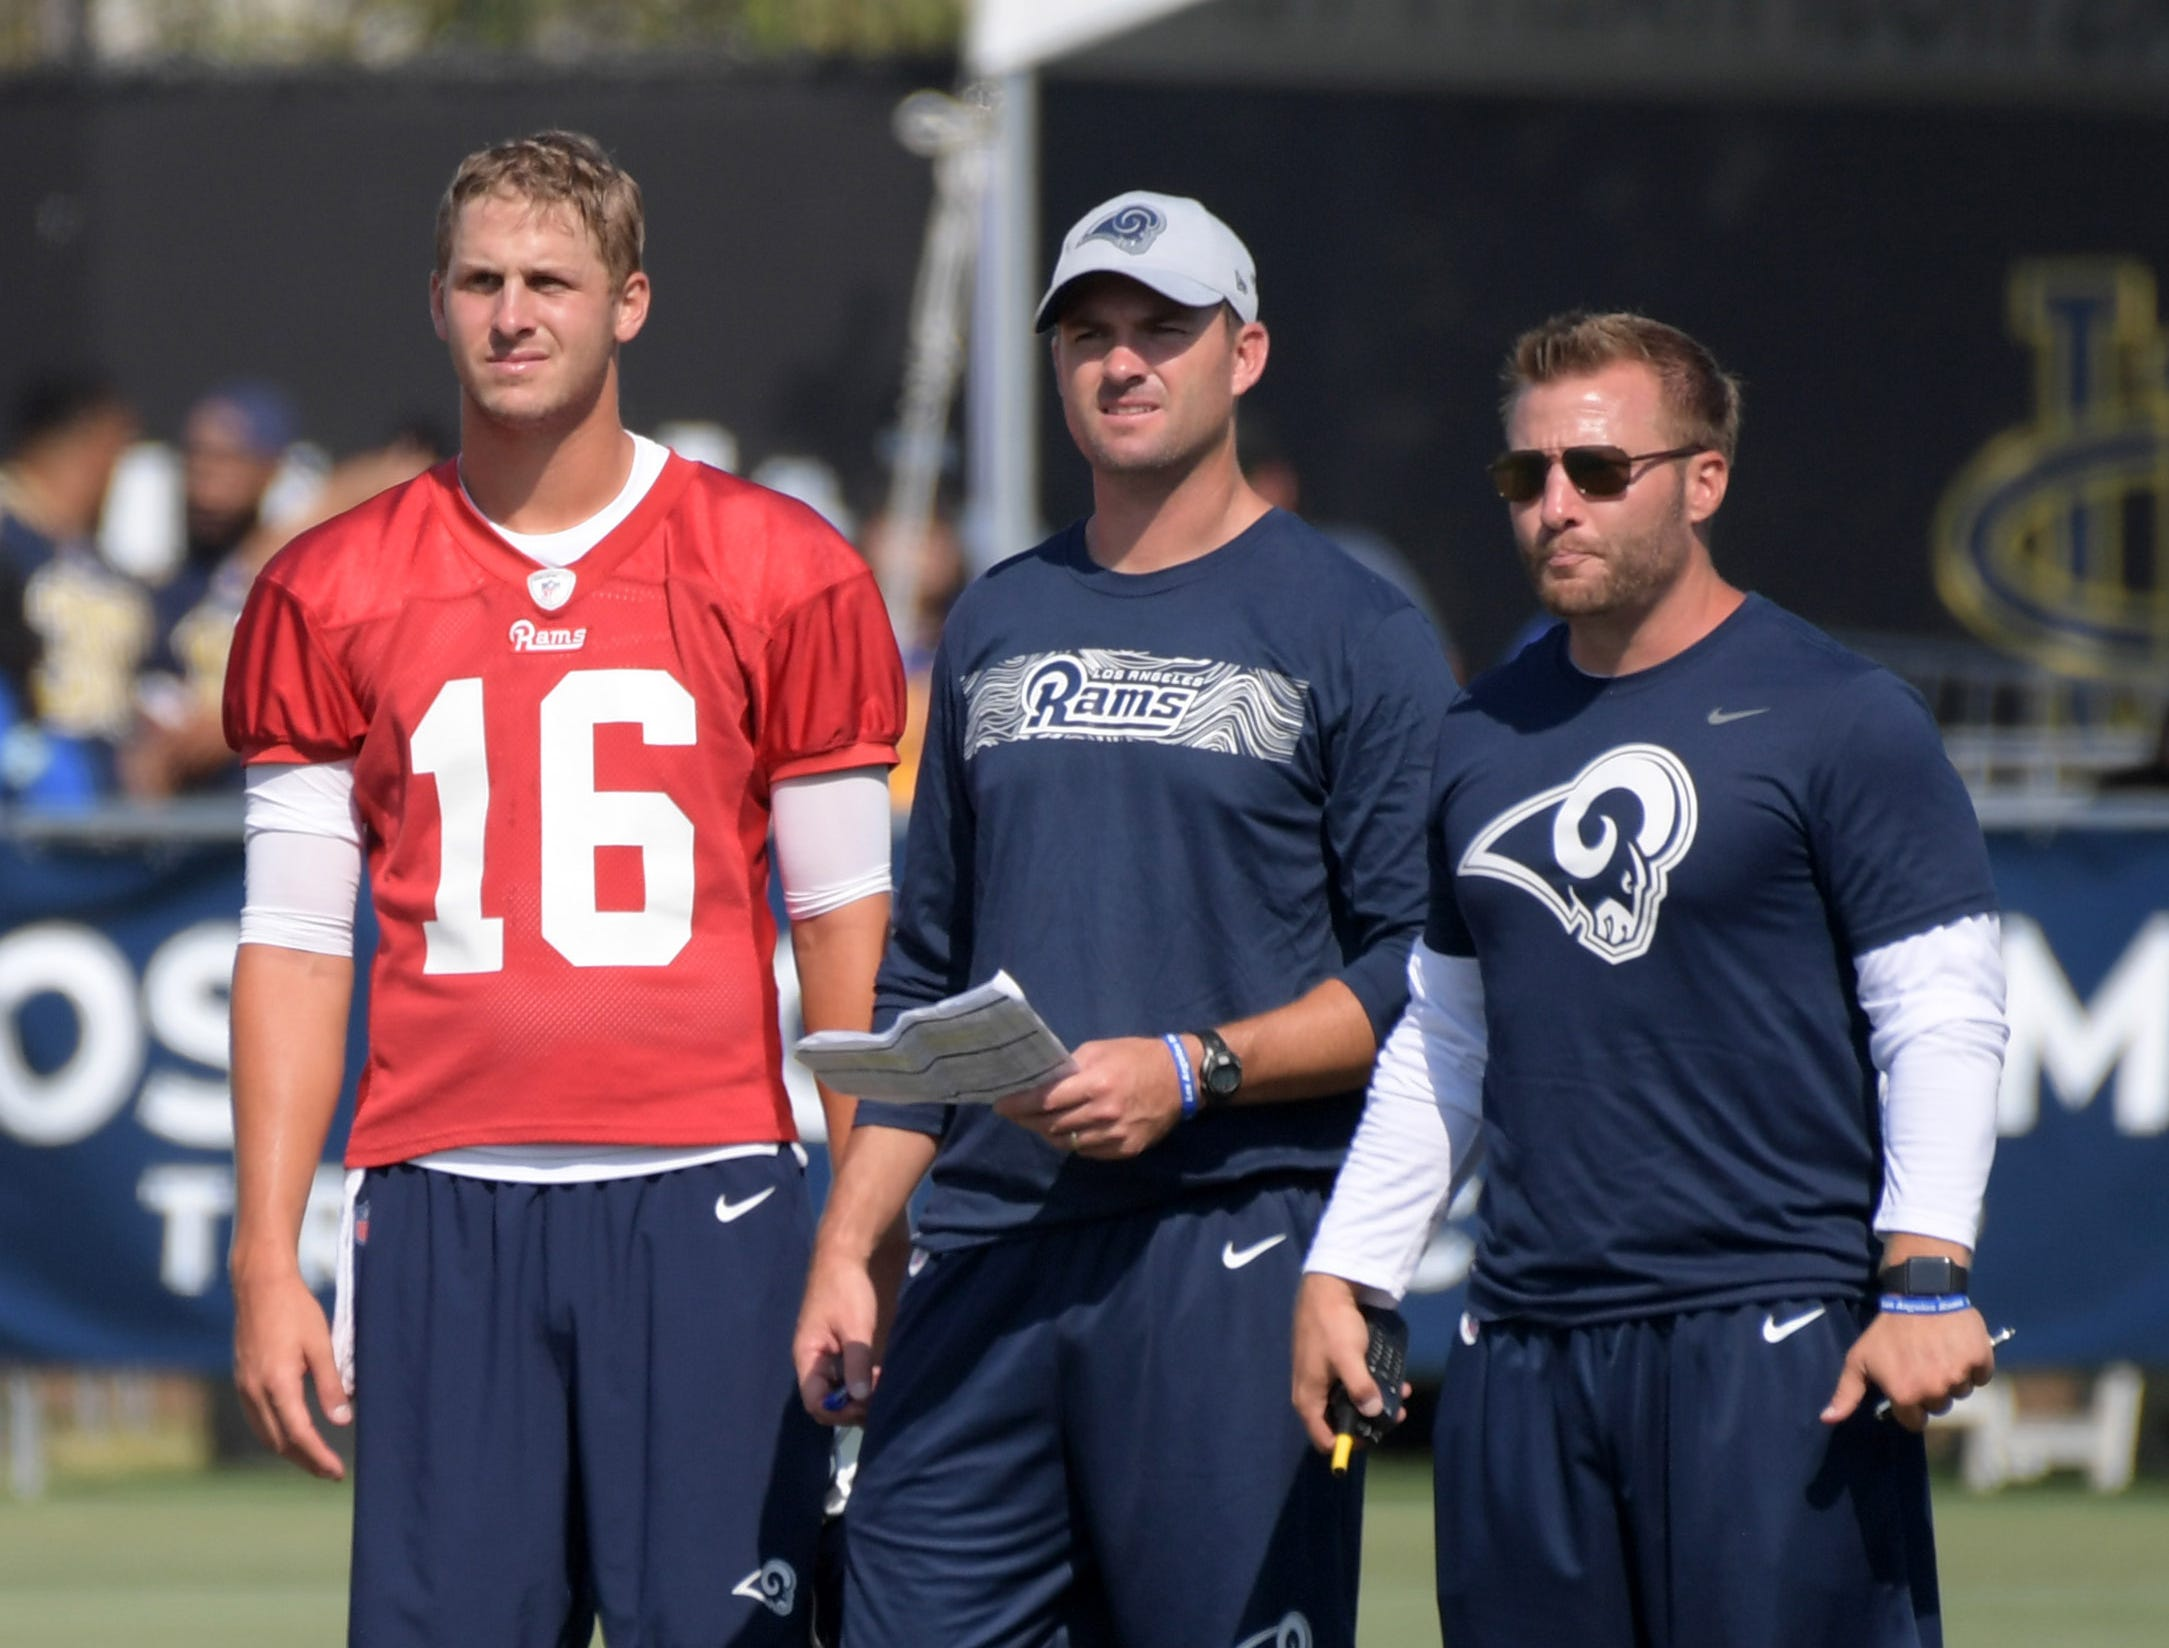 Taylor (center) has had success working with Rams head coach and former Miami University wide receiver Sean McVay as well as quarterback Jared Goff since arriving in Los Angeles.